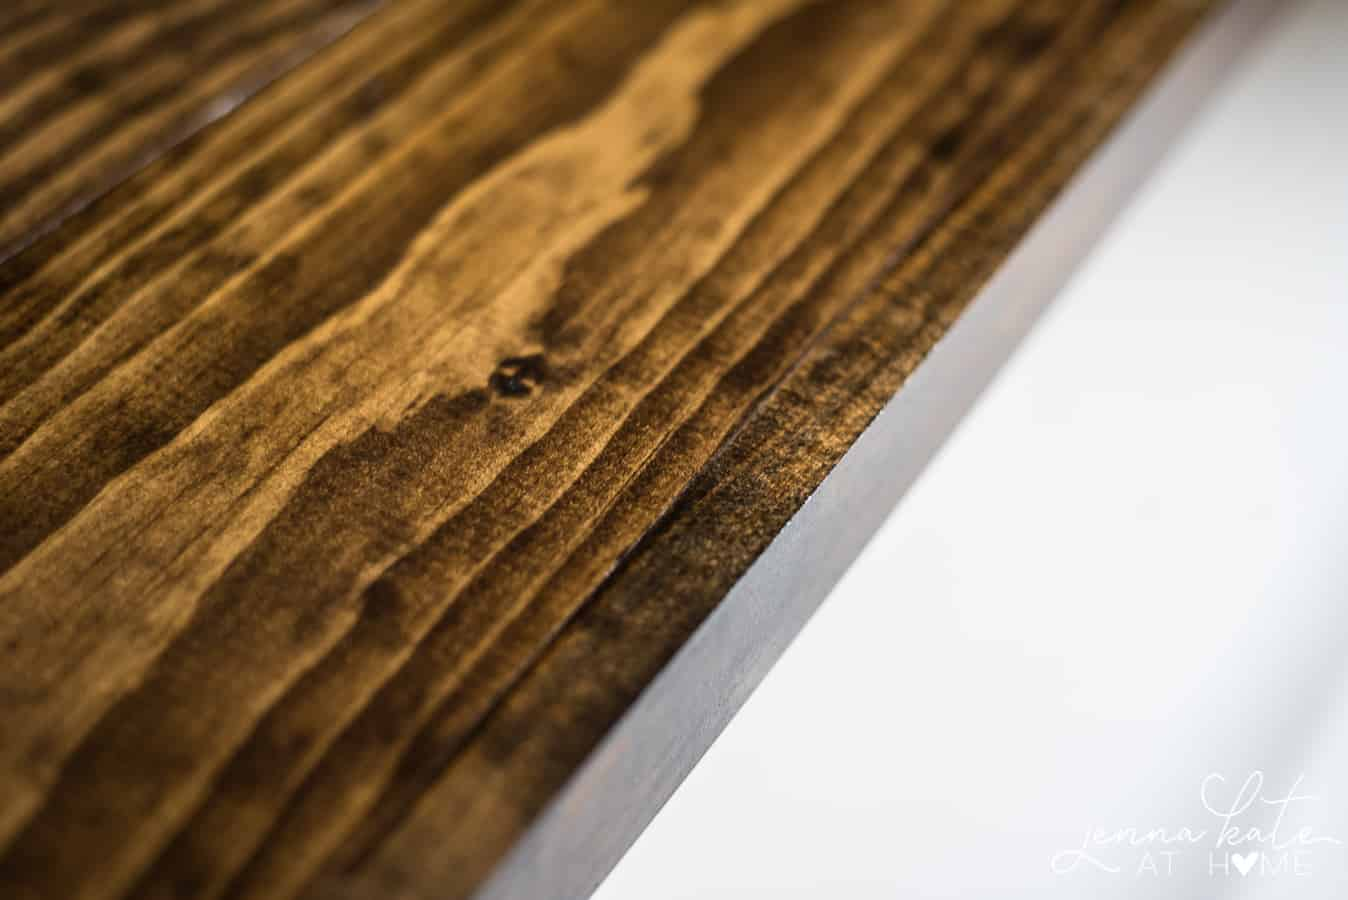 A close-up view of the wood details of the DIY wide plank butcher block countertops